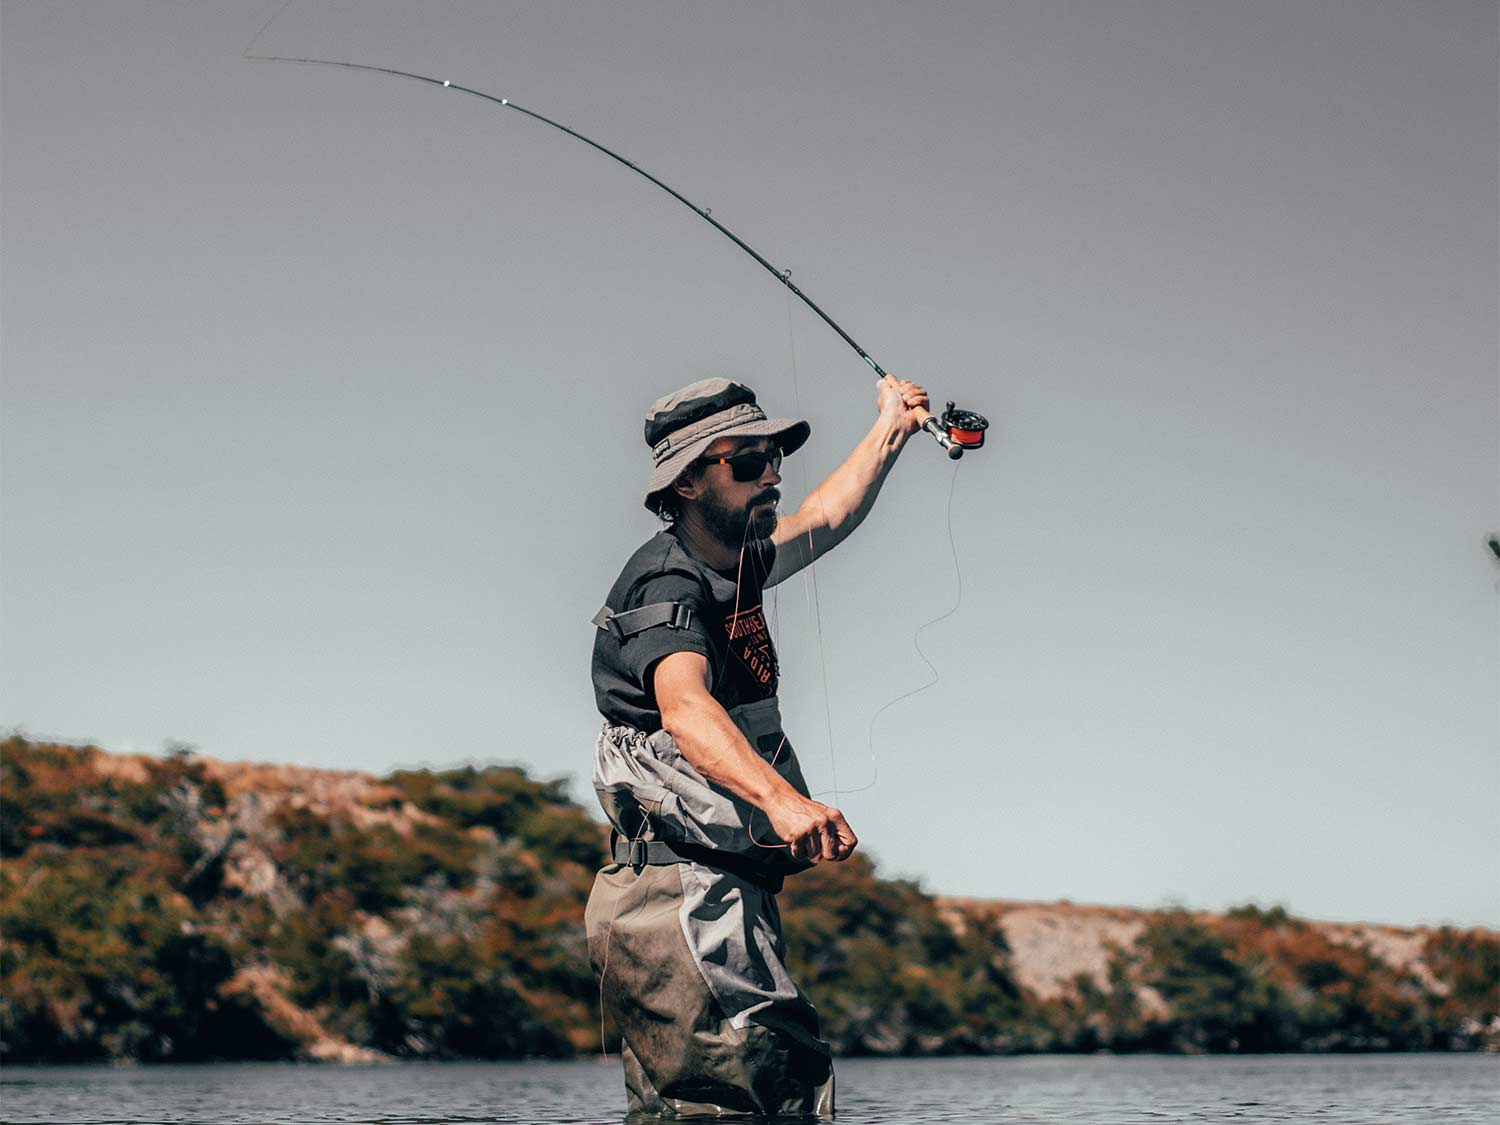 A fisherman wading into the waters while casting a fishing reel.